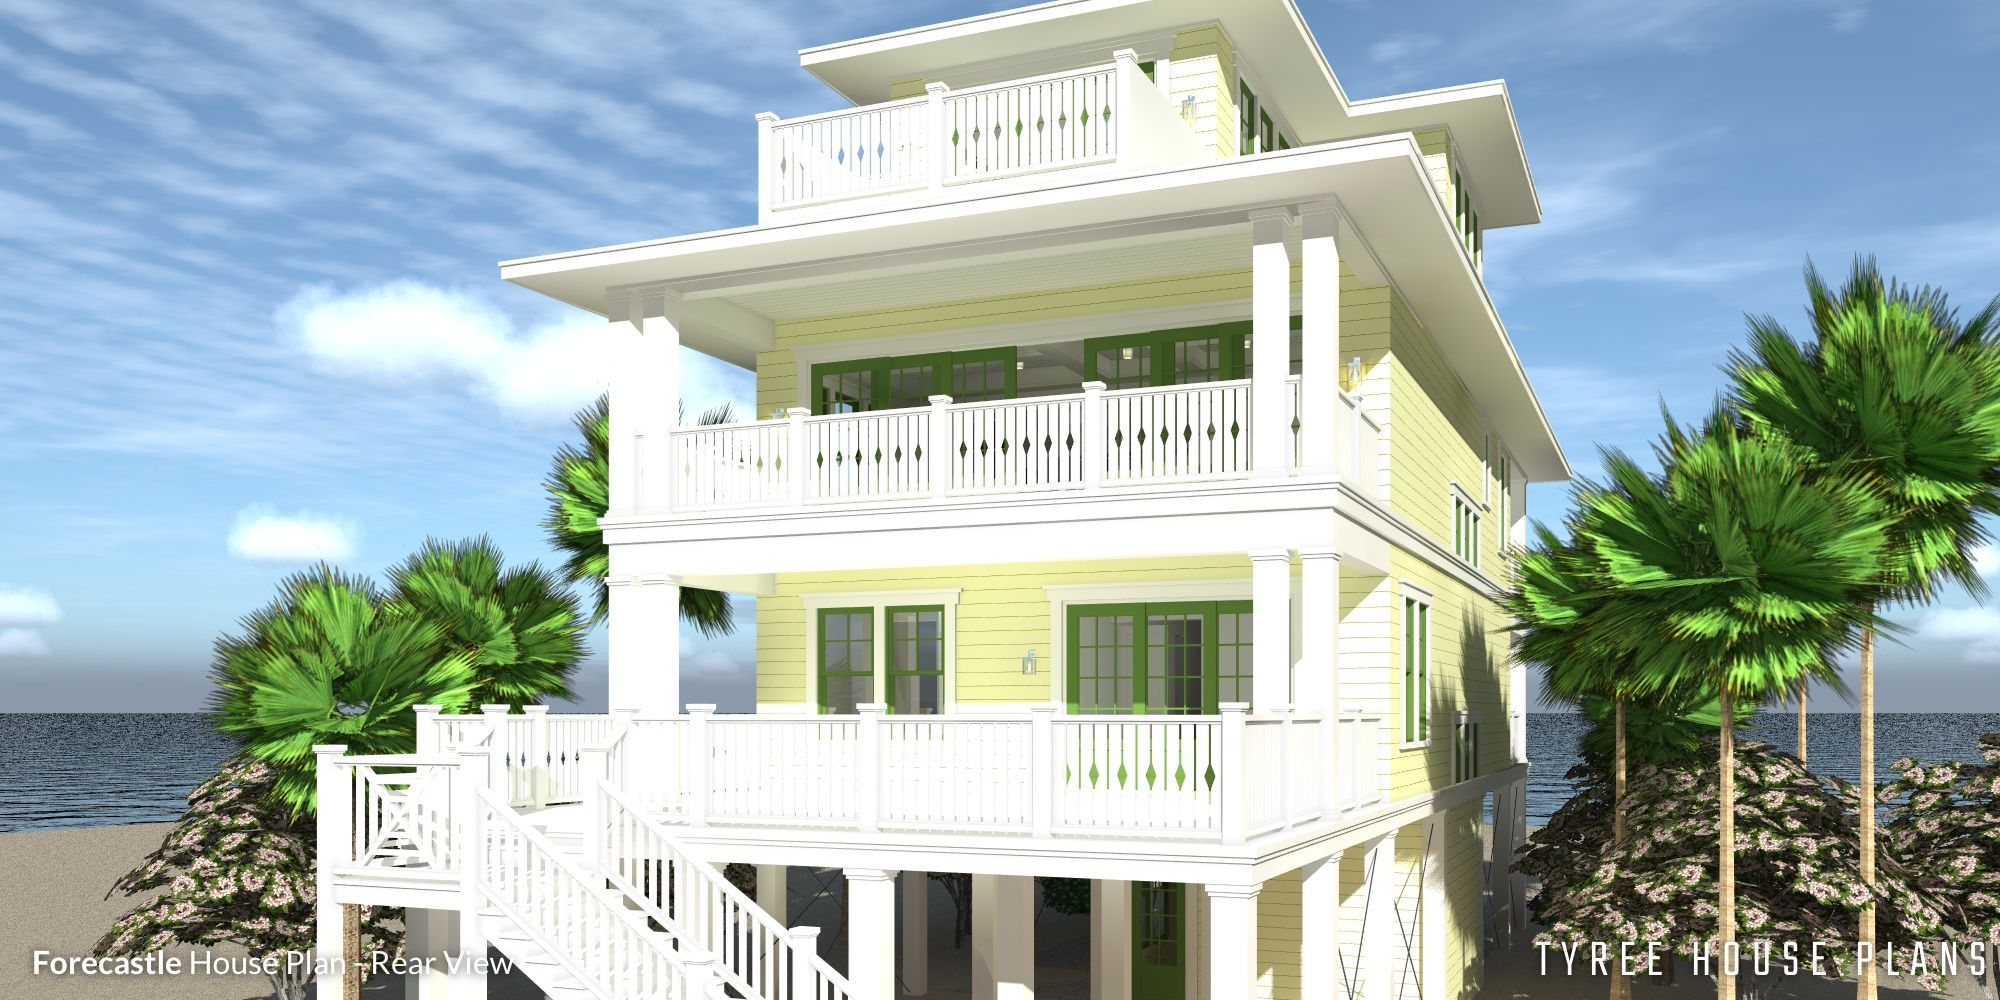 4 Story Beach House Plan 4 Bedrooms Tyree House Plans Beach House Plans Beach House Plan Coastal House Plans